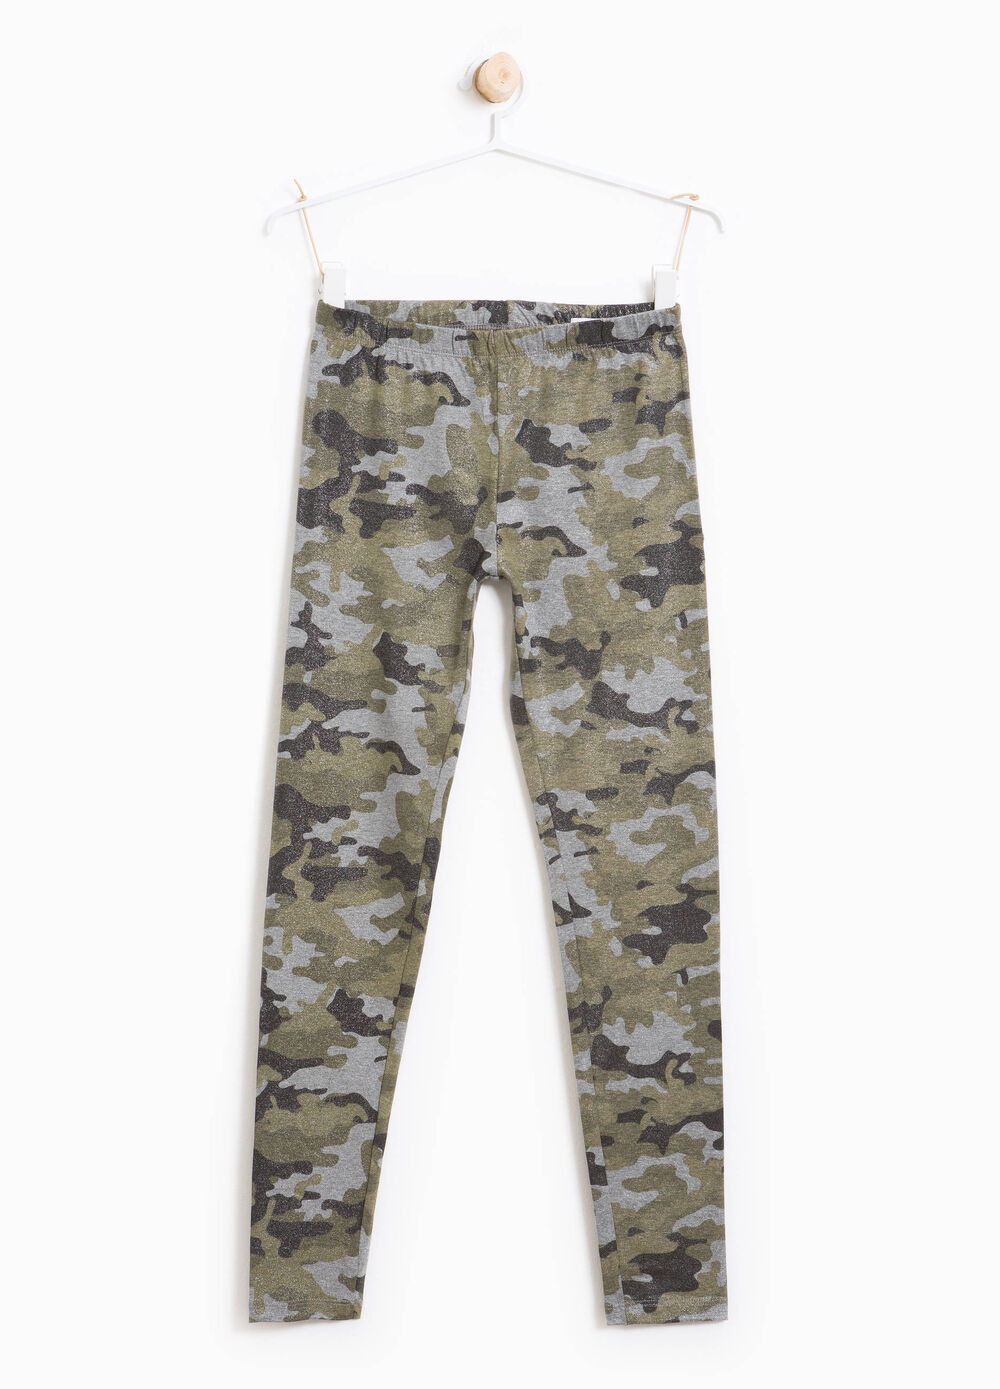 Stretch cotton camouflage leggings